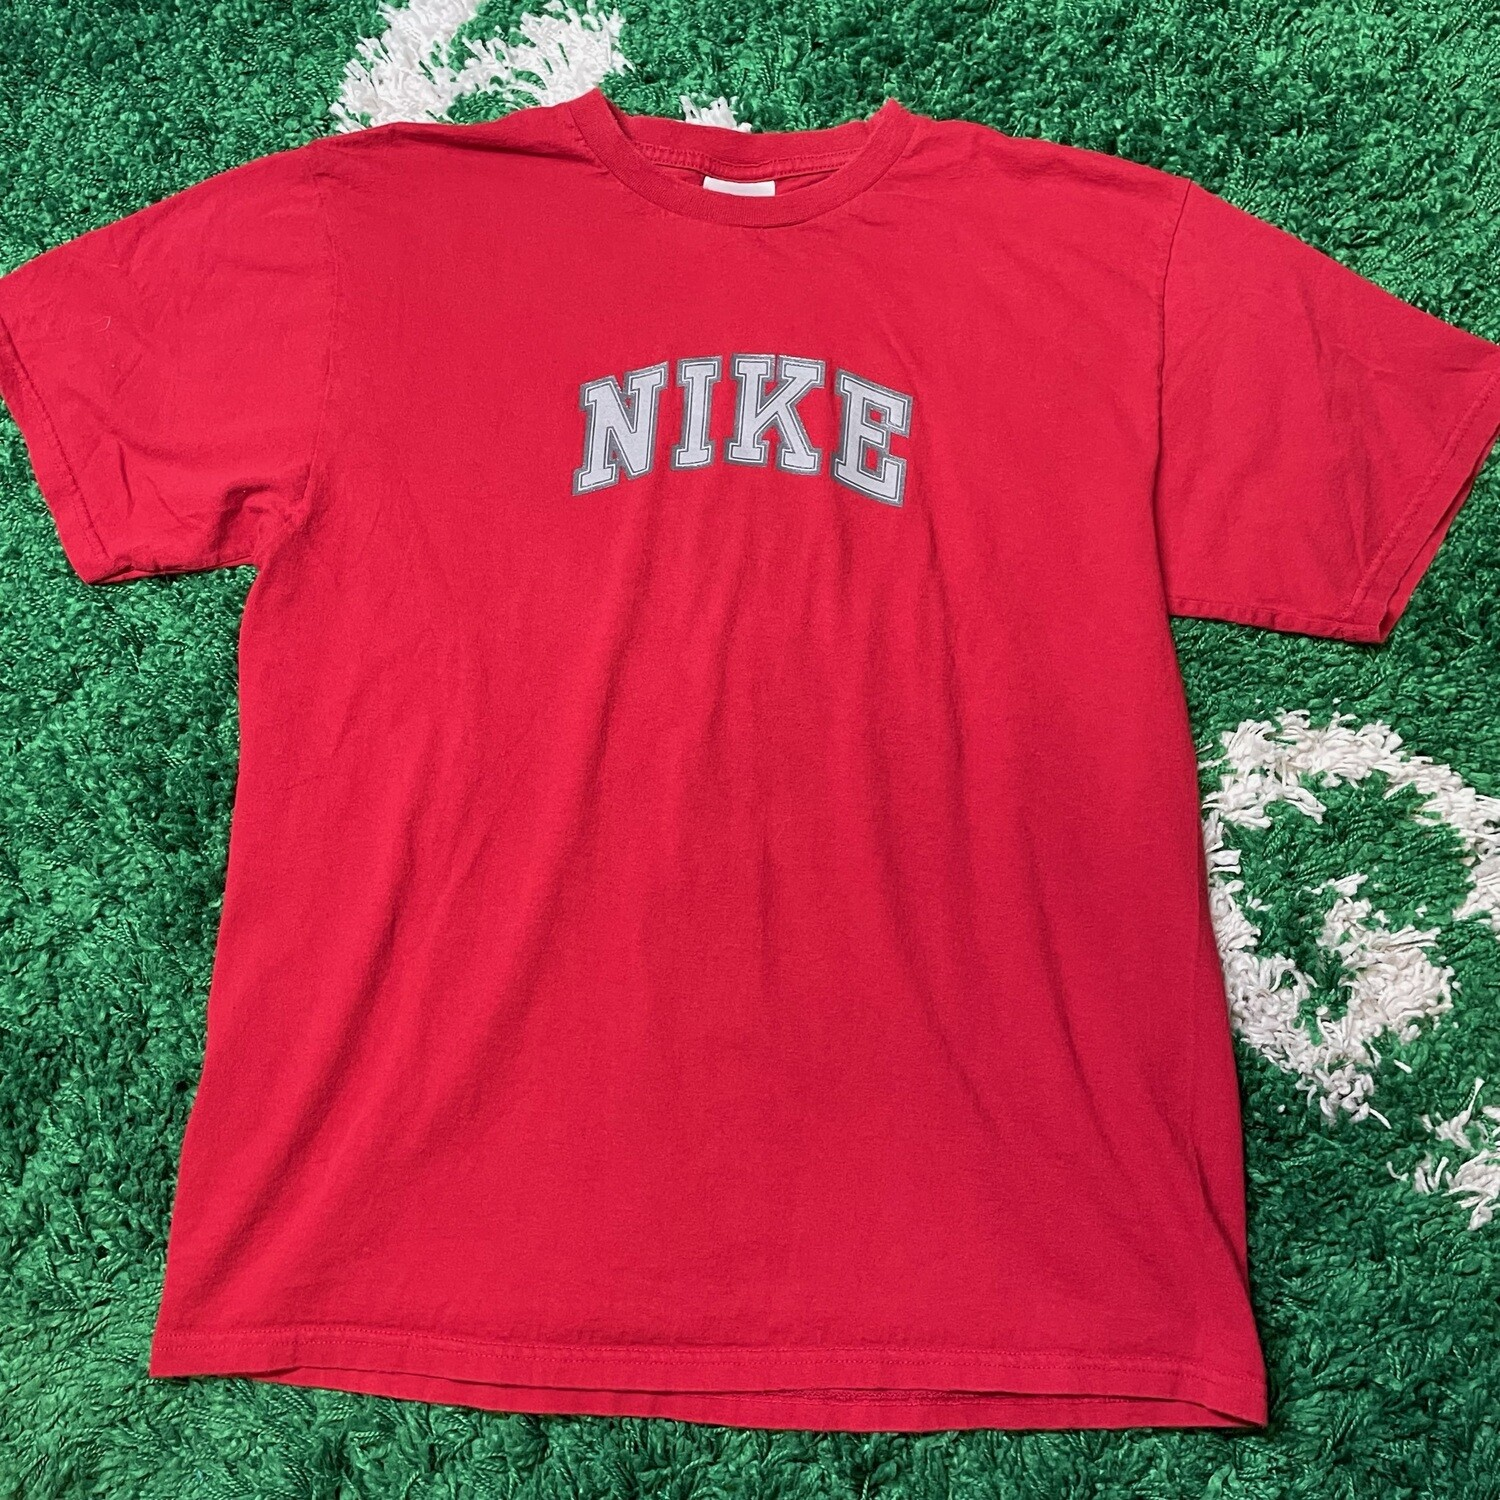 Nike Spell out tee red Size Medium